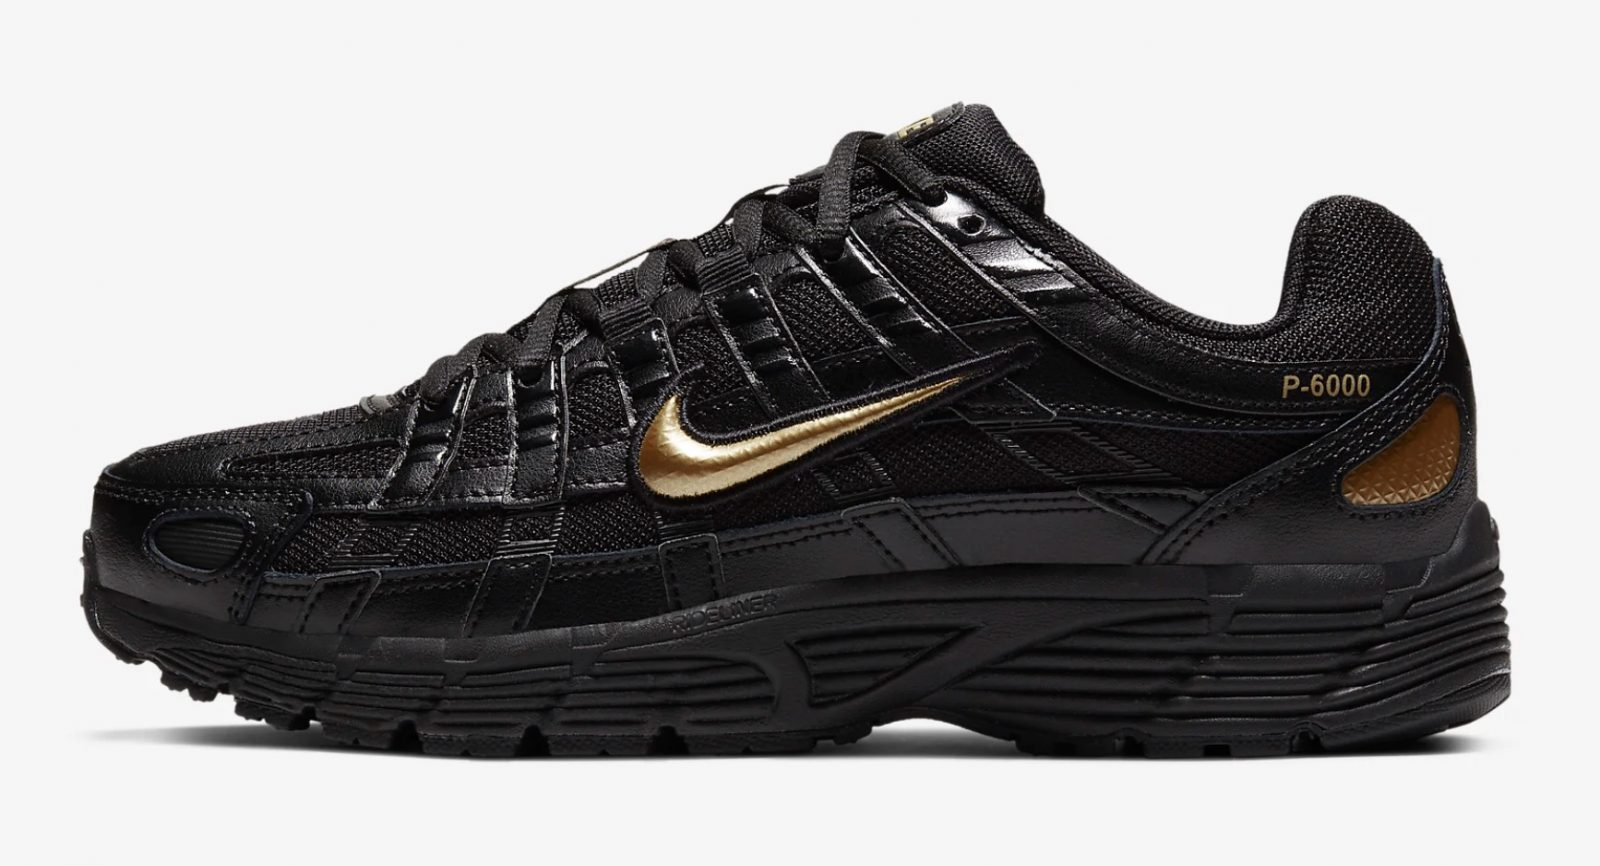 CJ9584-002 The Nike P-6000 Has Had An AW19 Makeover In Black And Gold 5